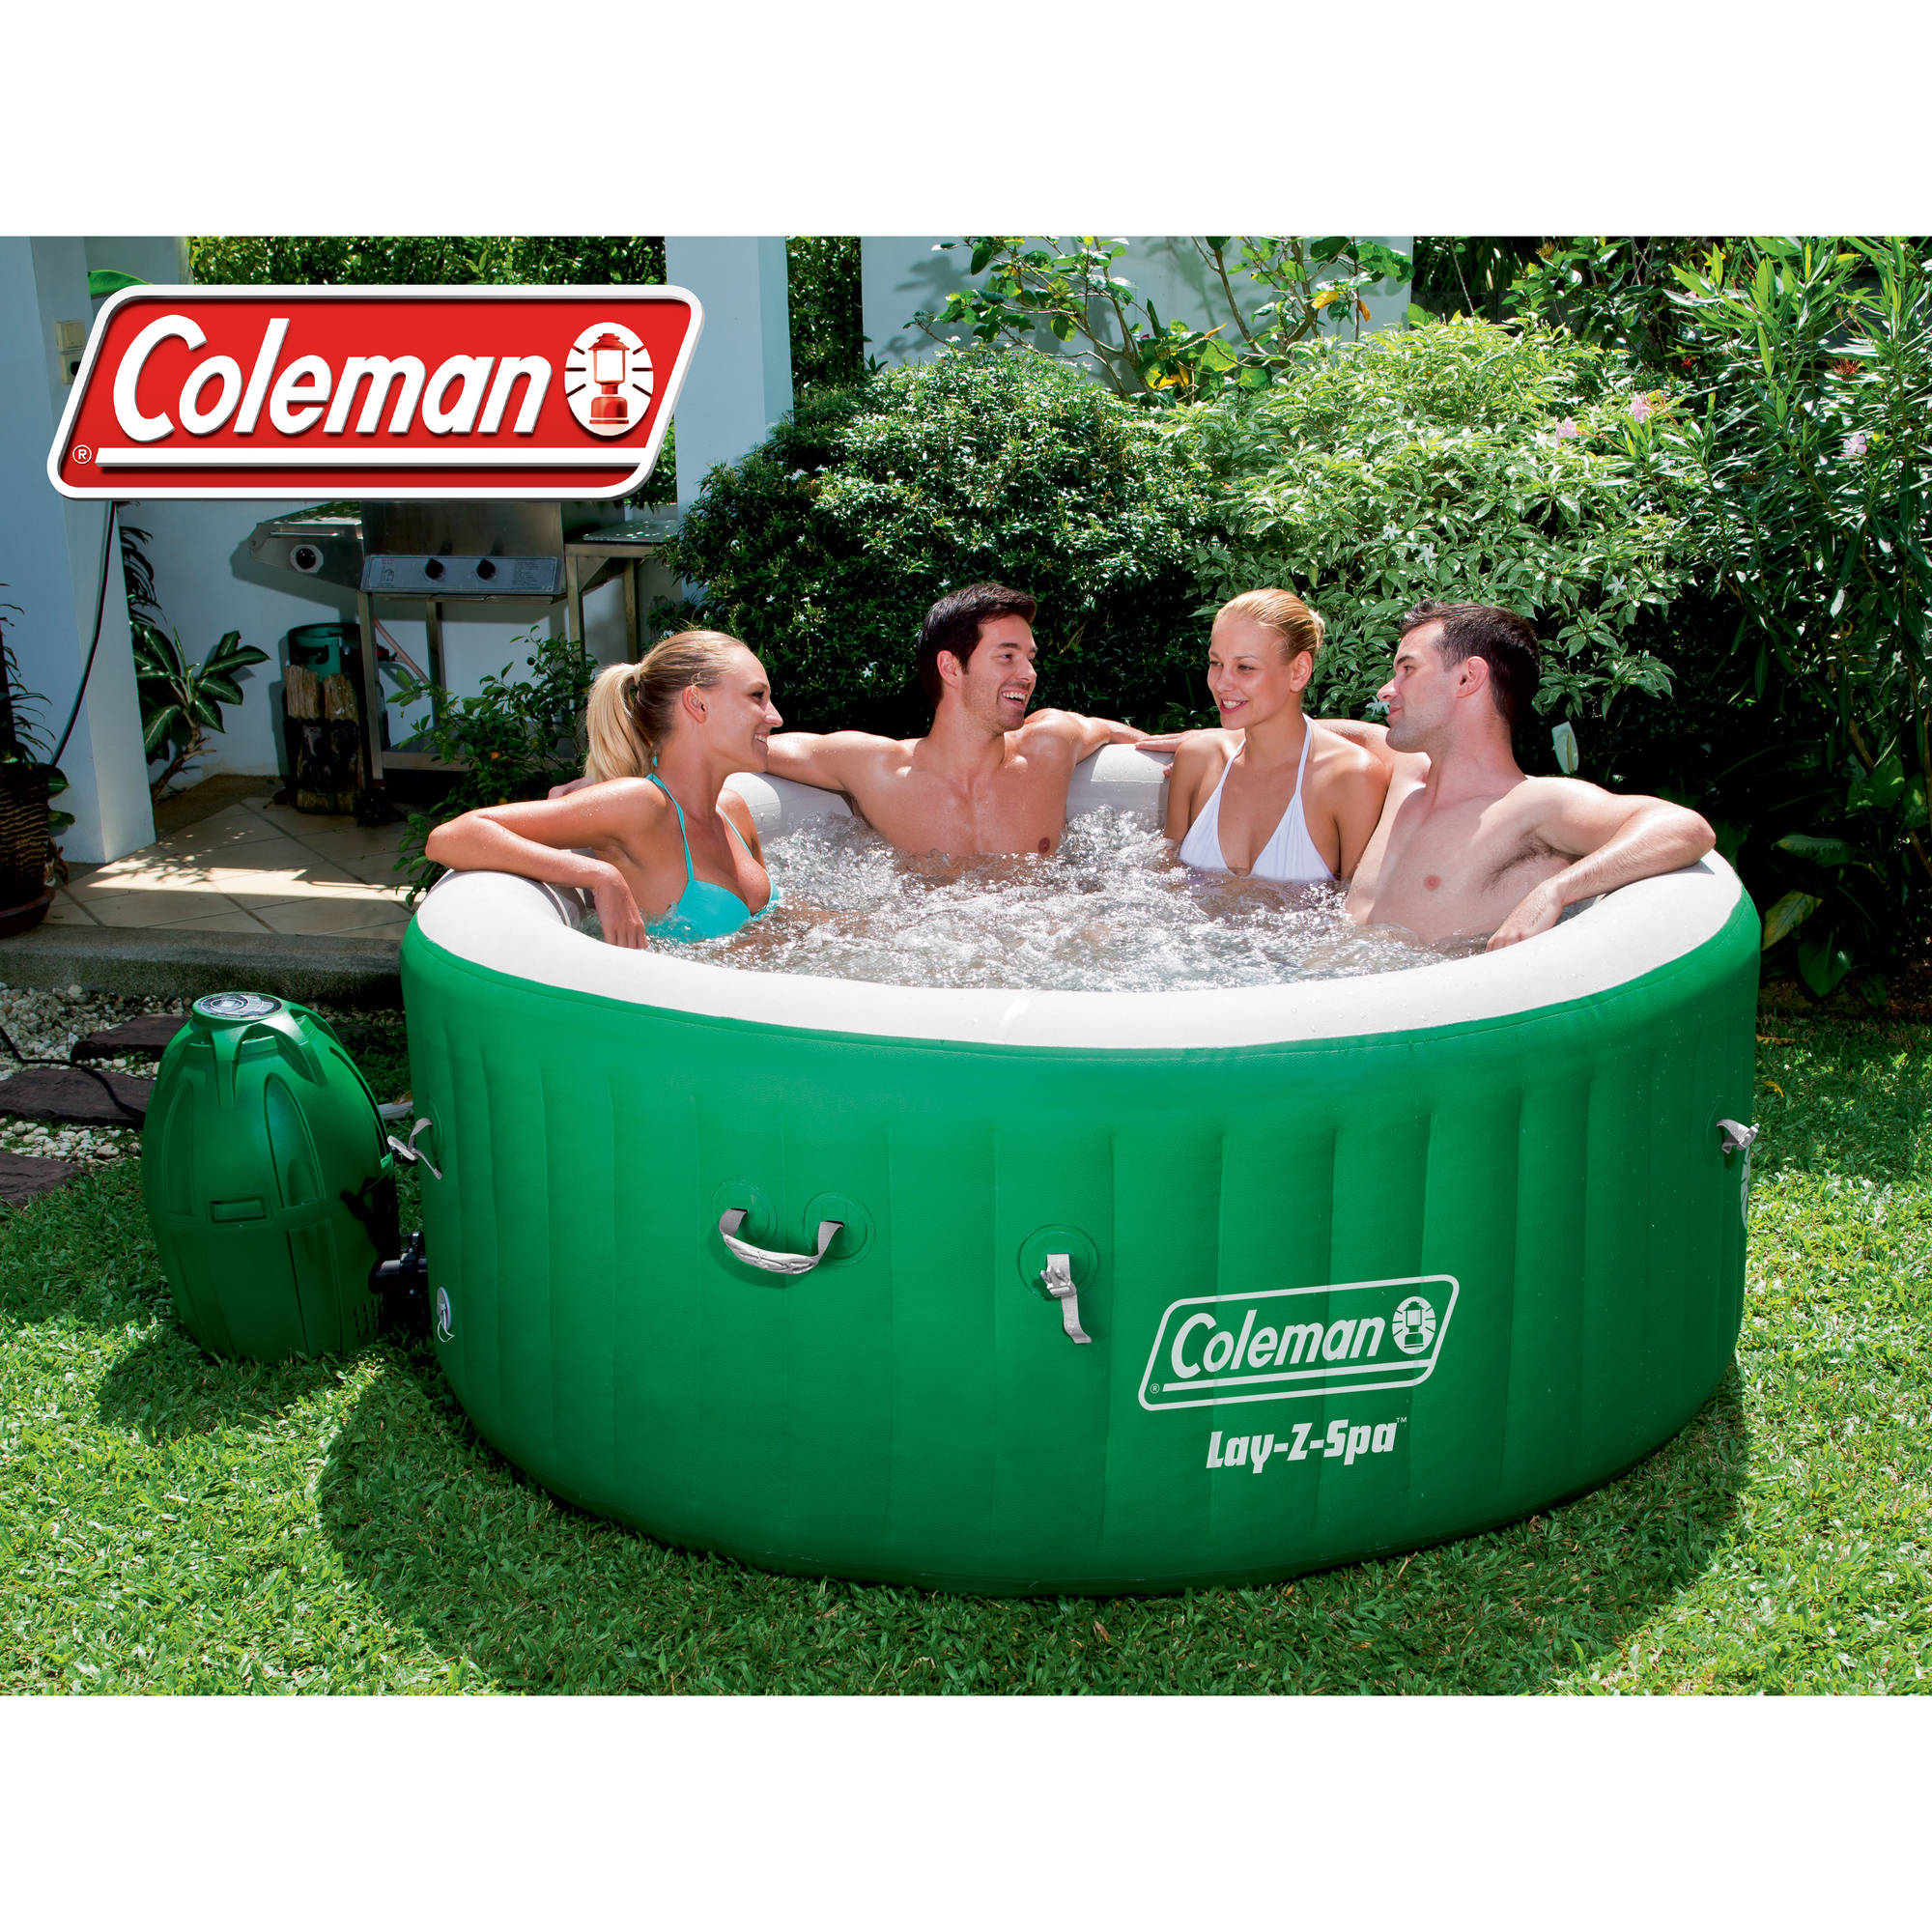 Coleman Lay-Z Mage Portable Spa for 4-6 People As Low As $291.14 on